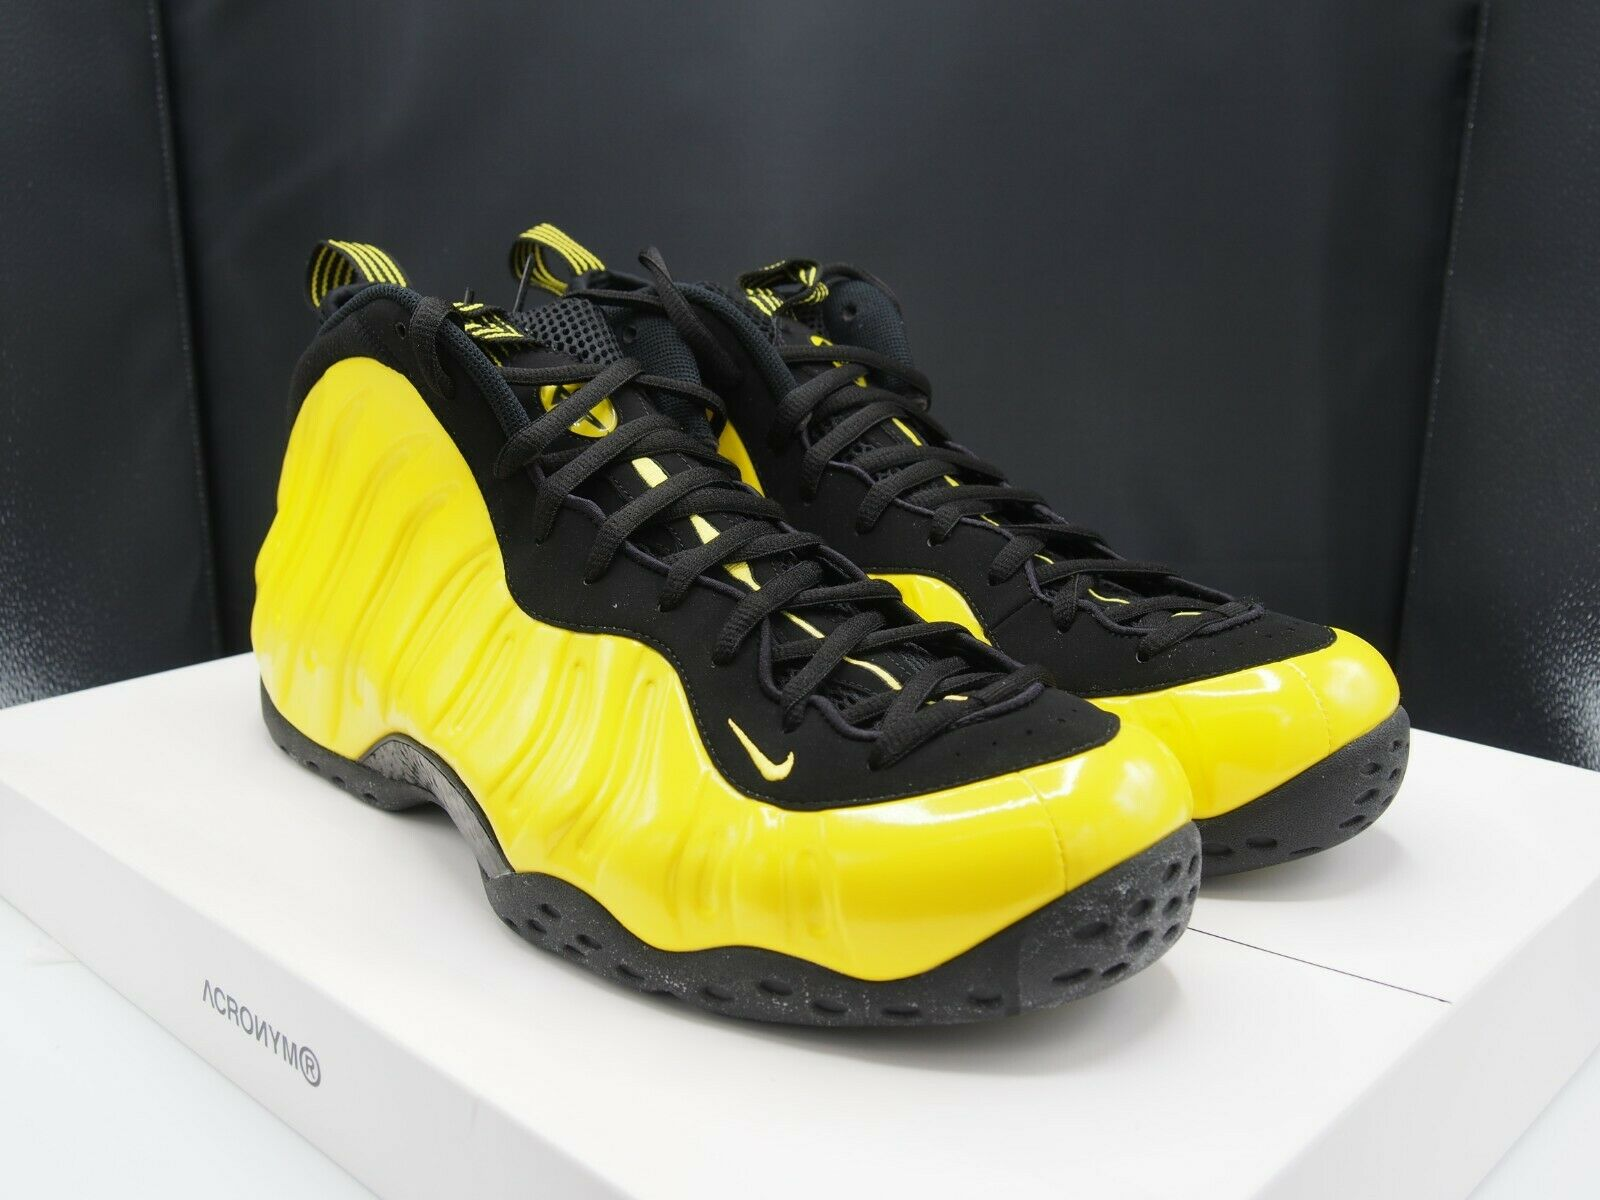 Category: Nike Air Foamposite Pro One